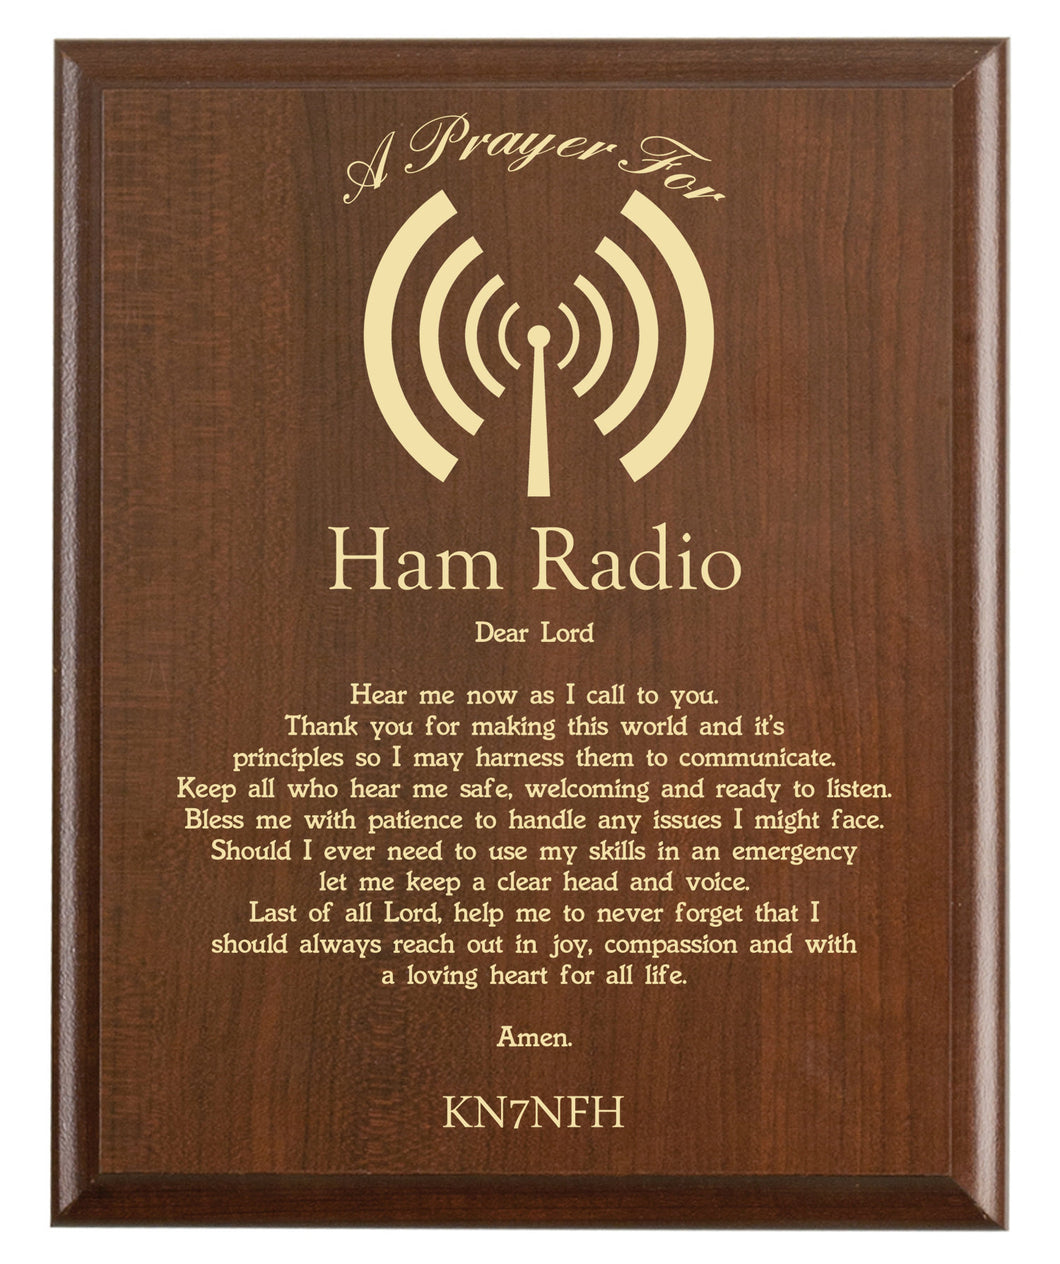 Christian prayer for a ham radio with industry logo and free personalization. Cherry finish with laser engraved text.